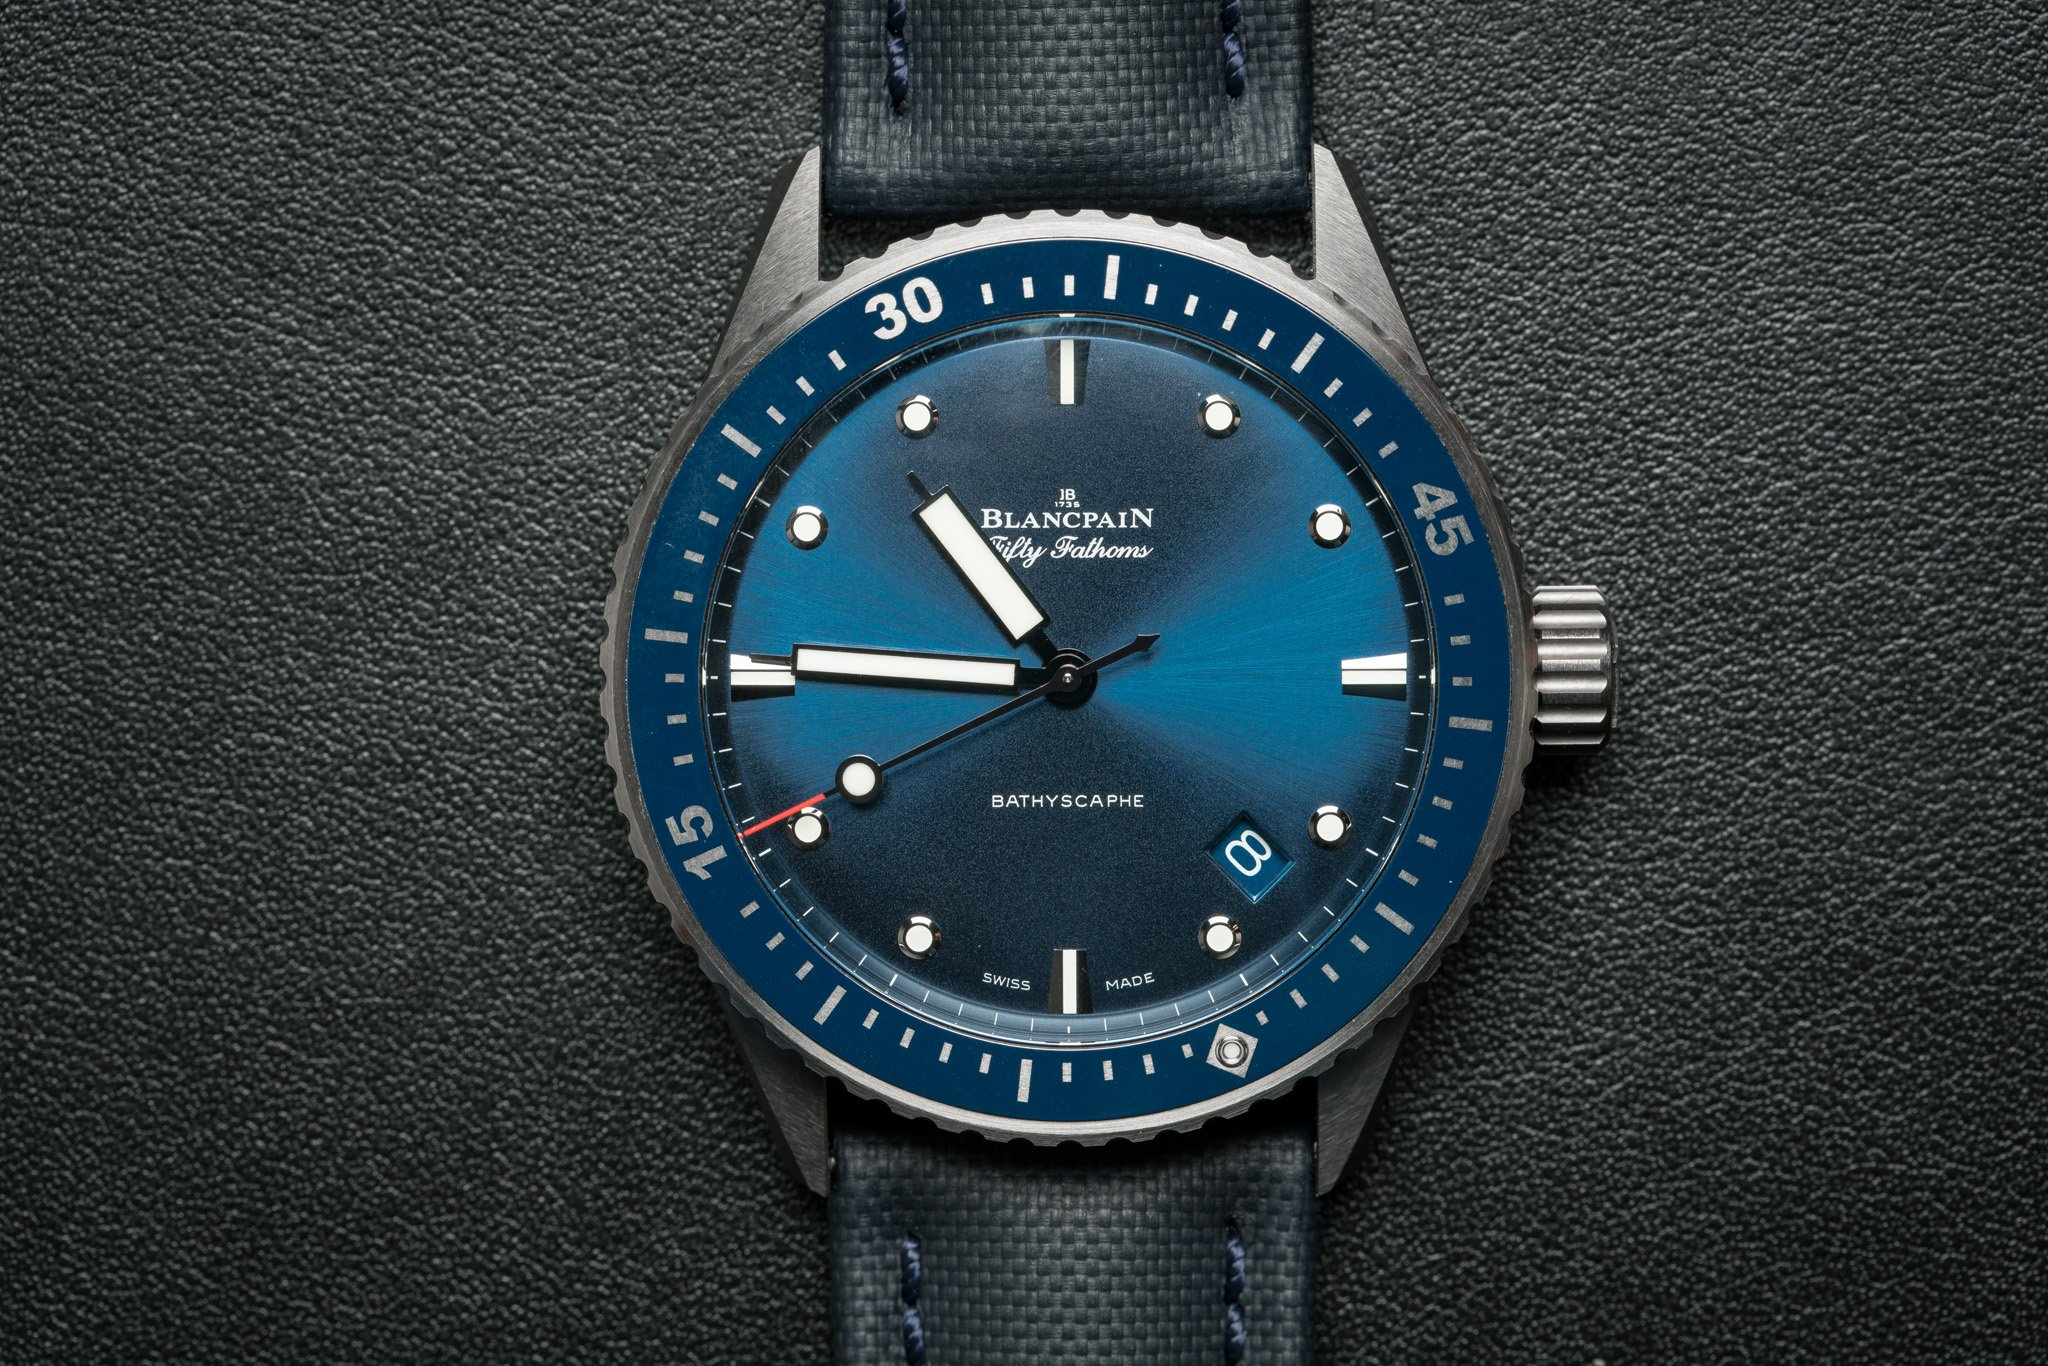 Front of Blancpain Fifty Fathoms Bathyscaphe